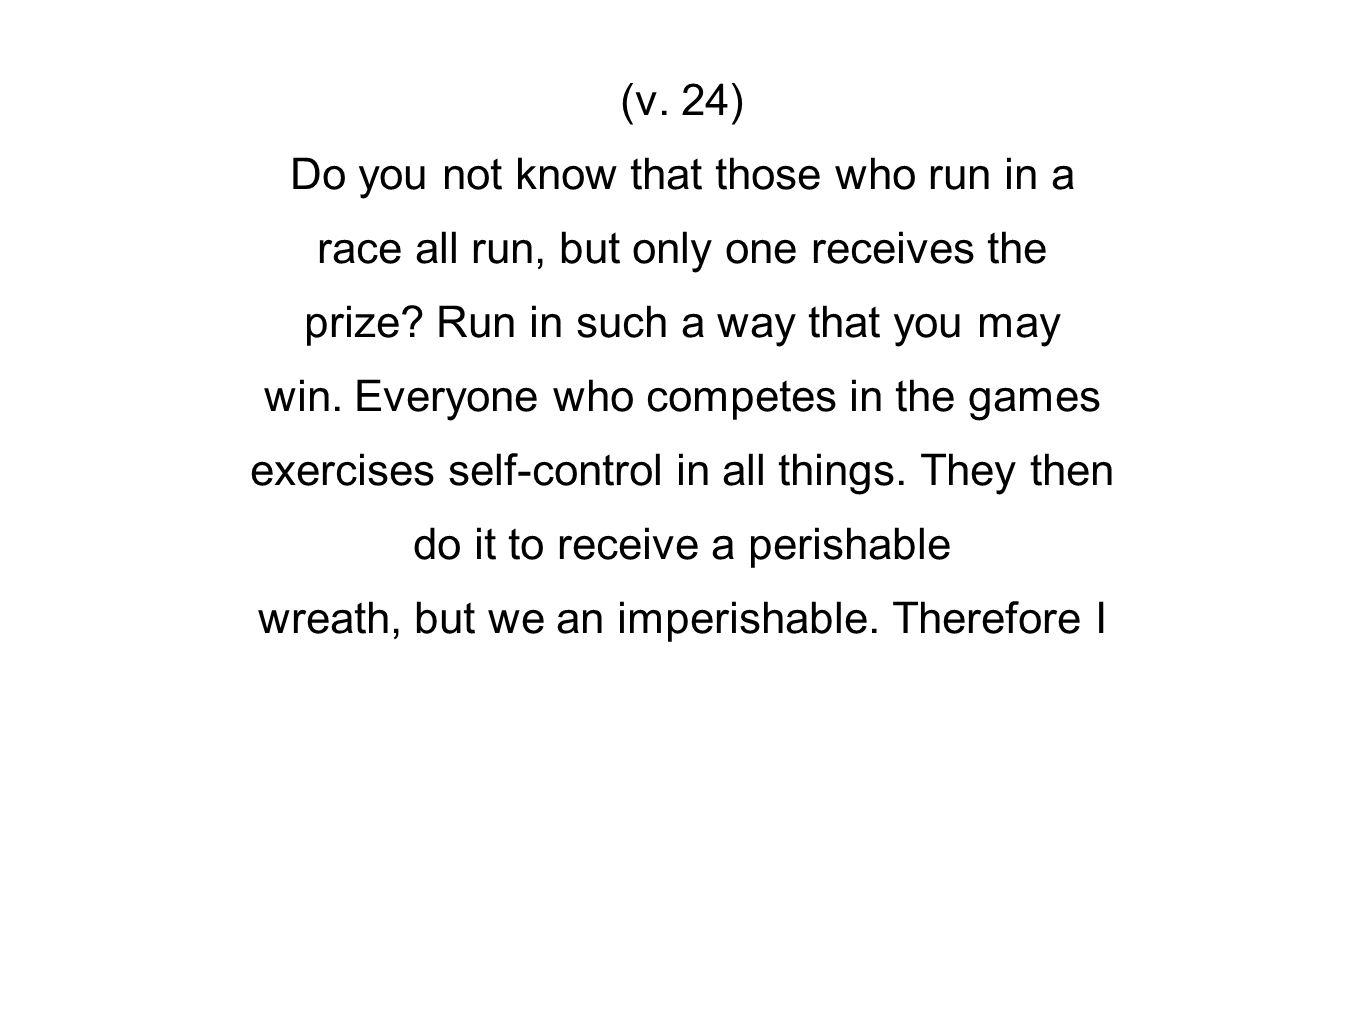 (v. 24) Do you not know that those who run in a race all run, but only one receives the prize.